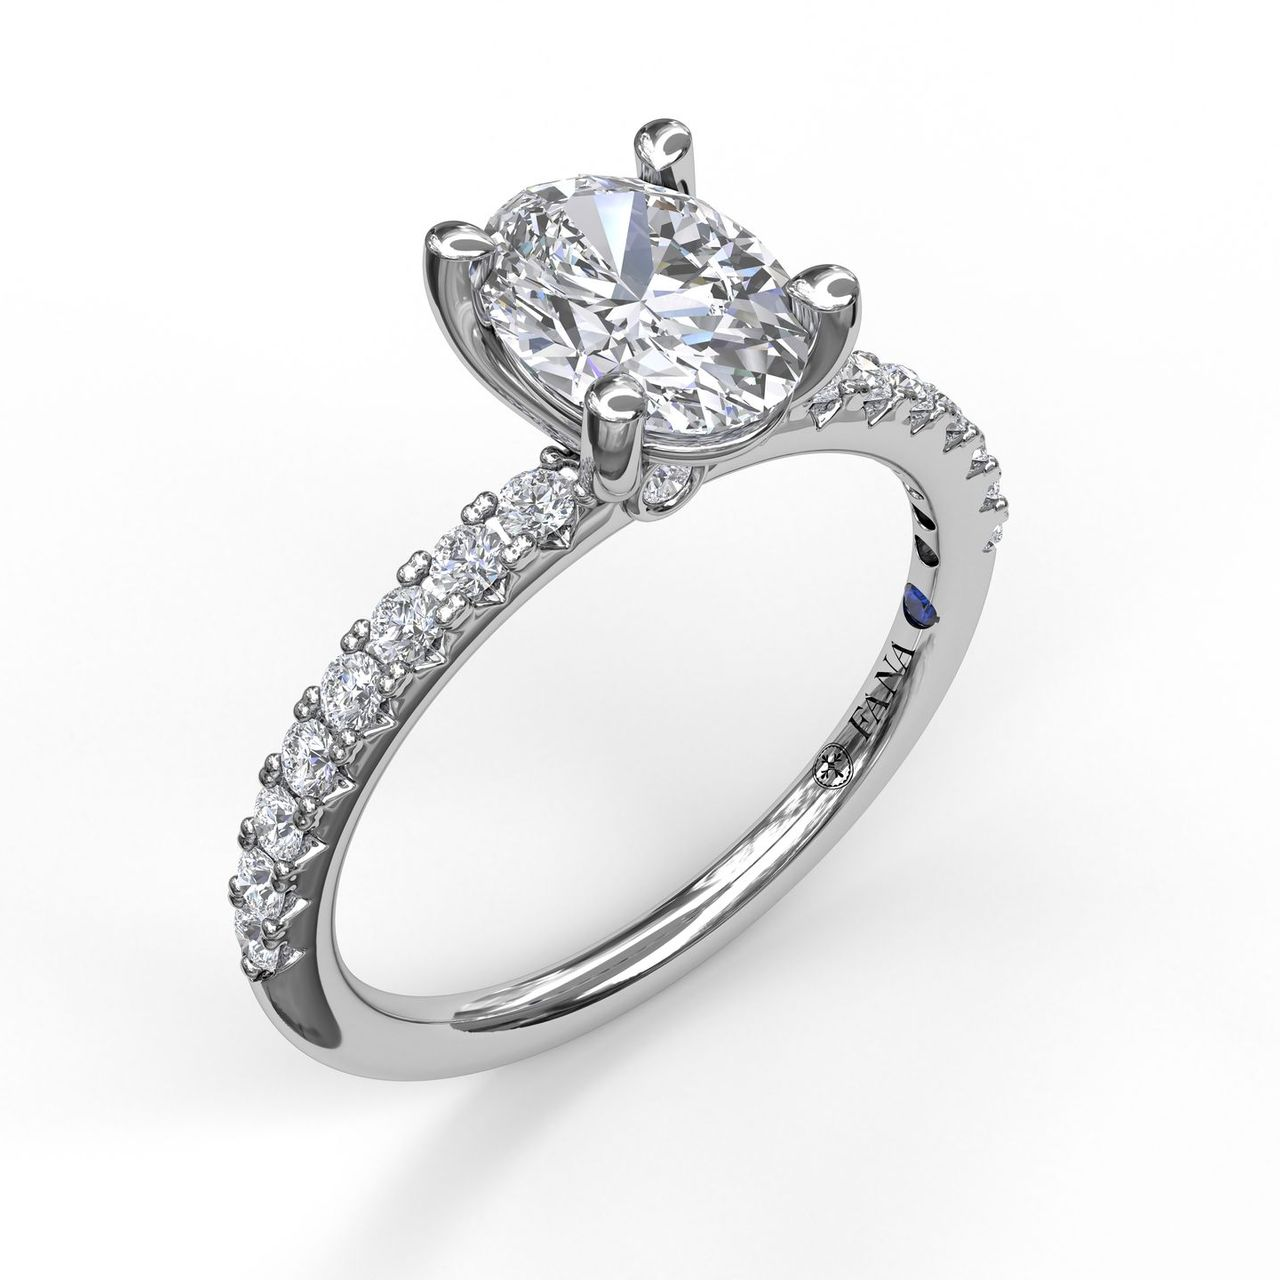 Classic Single Row Engagement ring with an Oval Center Diamond